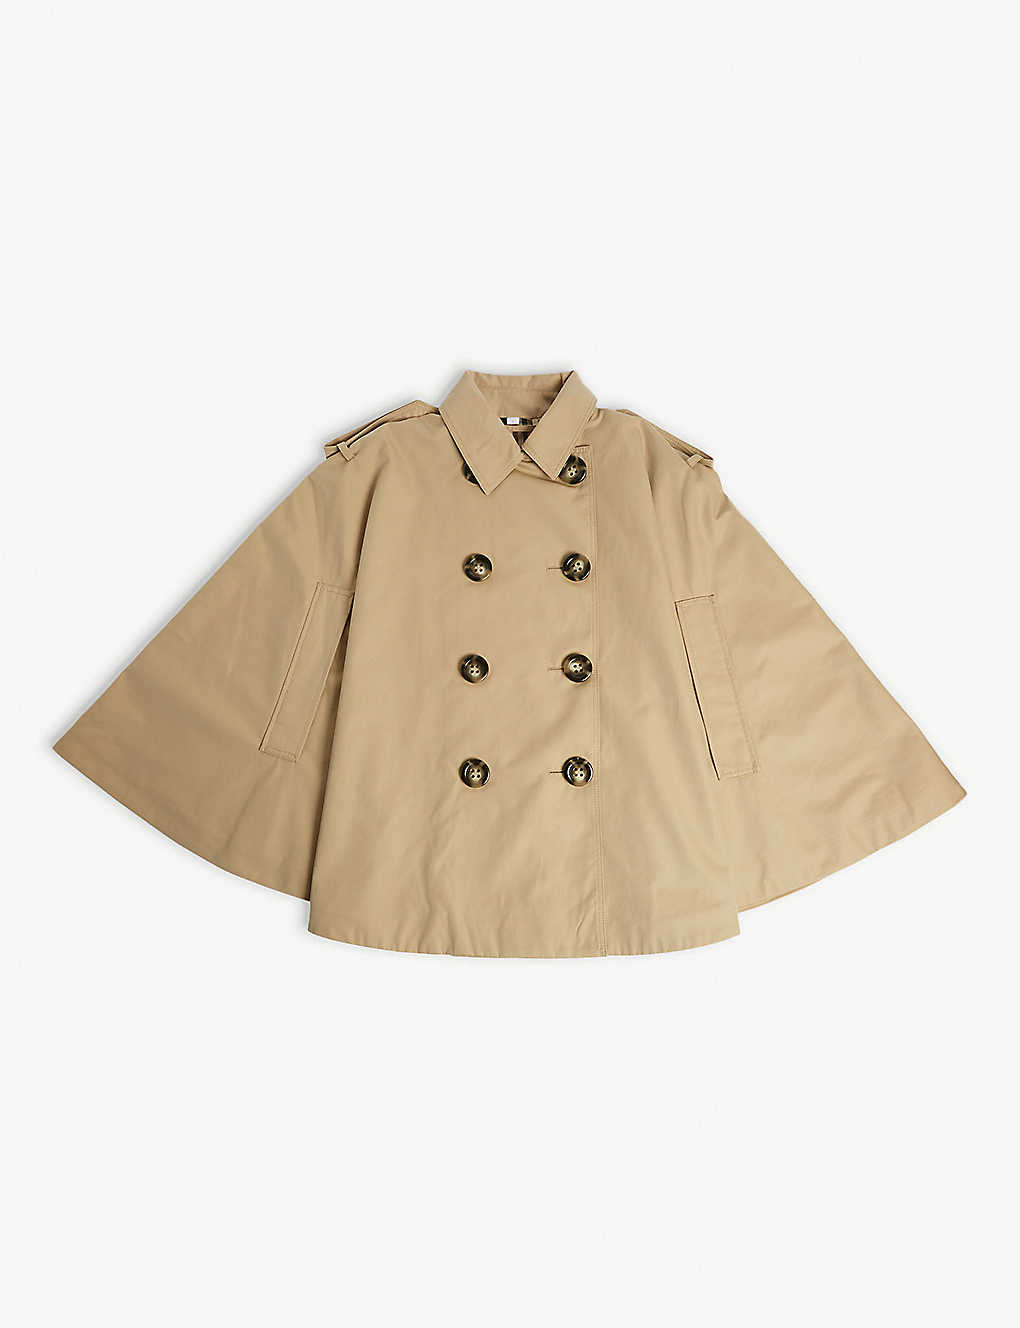 BURBERRY: Double-breasted cotton trench cape M-L